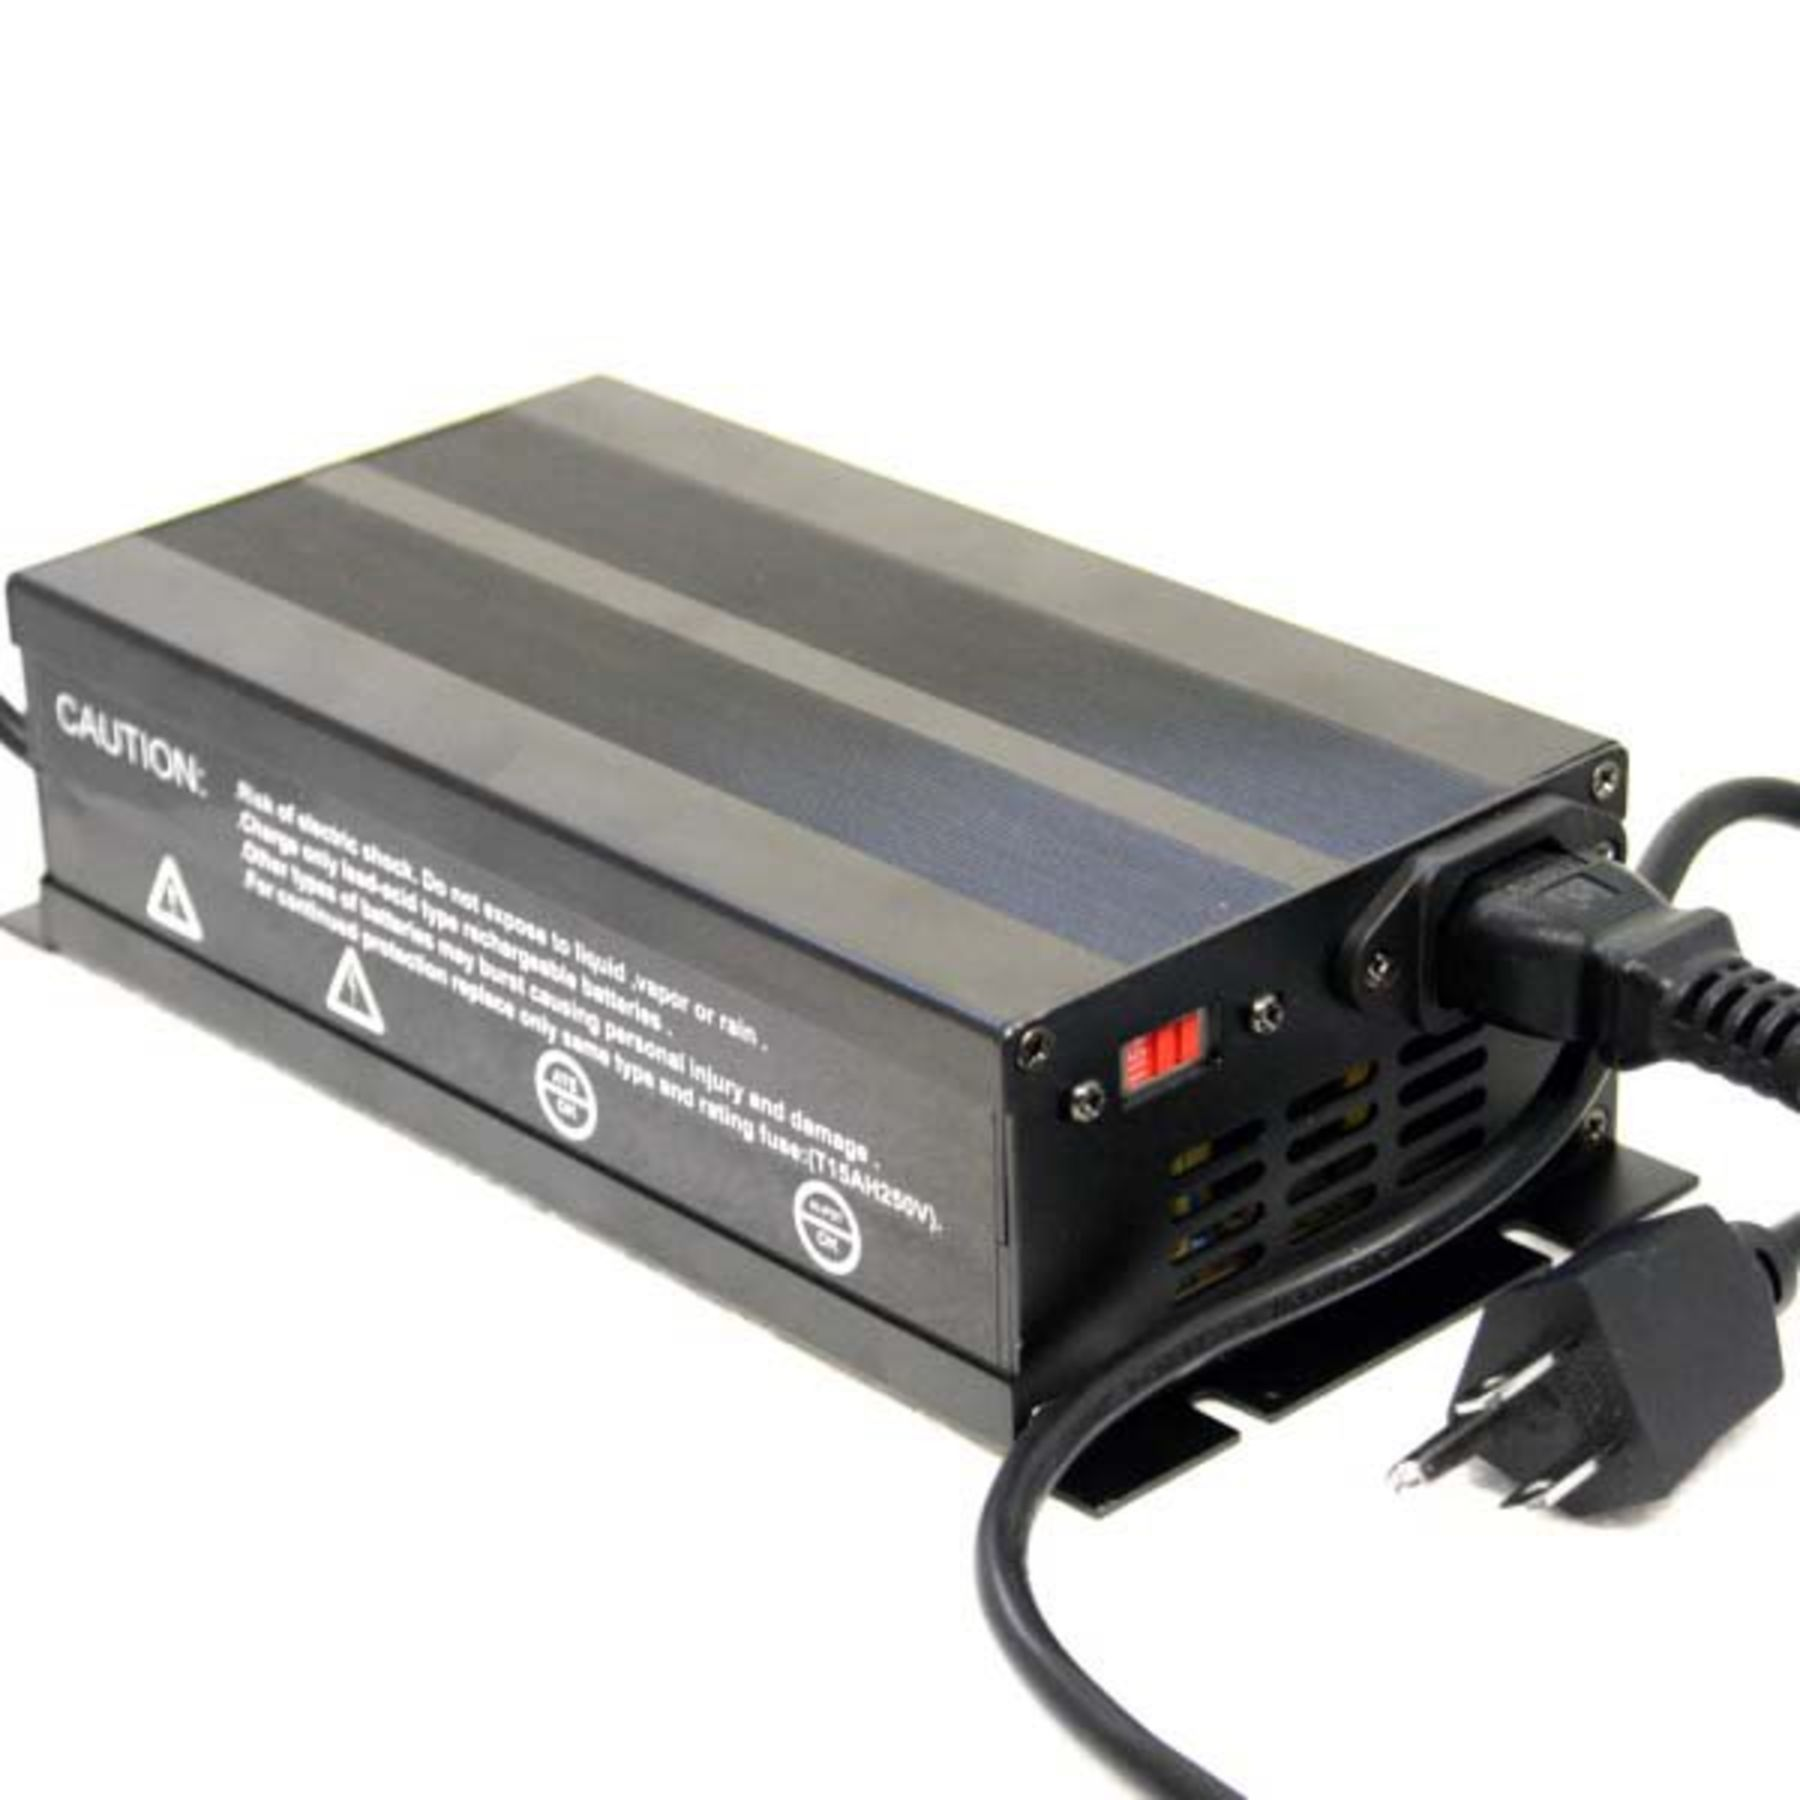 Soneil 48 Volt 6 Amp Sealed Lead Acid Battery Charger Dual Step Current Mode